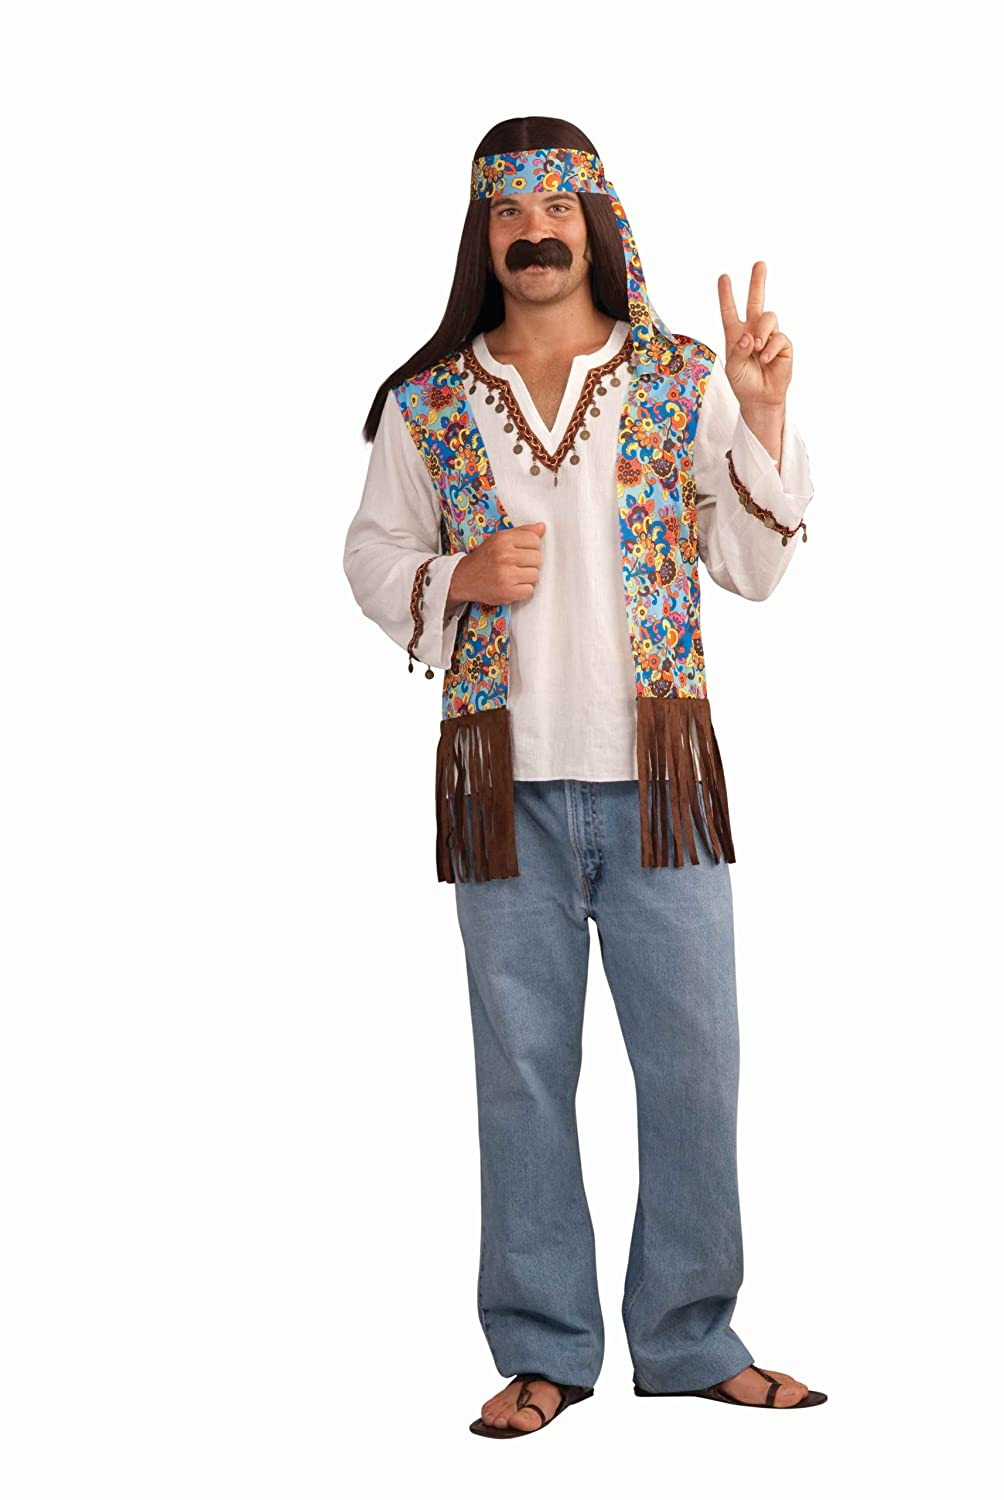 Amazon.com Forum Novelties Menu0027s Groovy Hippie Costume Shirt and Headband Multi Colored One Size Clothing  sc 1 st  Amazon.com & Amazon.com: Forum Novelties Menu0027s Groovy Hippie Costume Shirt and ...